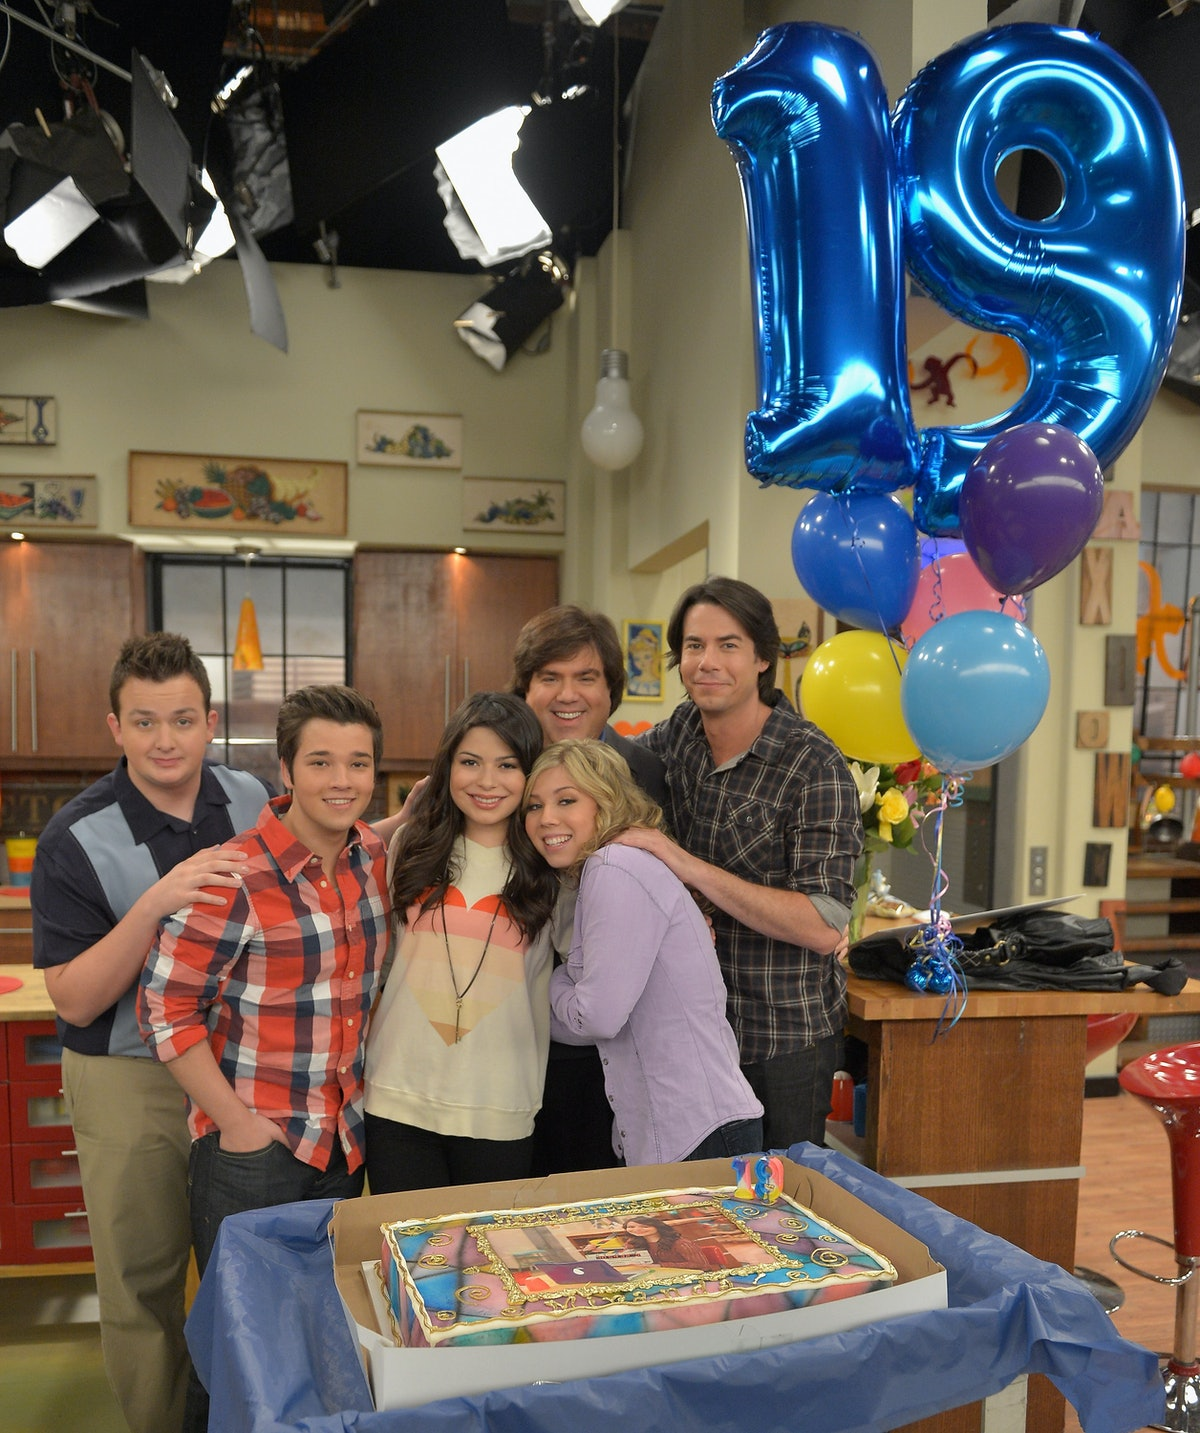 BURBANK, CA - MAY 14:  iCarly's Miranda Cosgrove celebrated her 19th birthday today Monday, May 14 on the set of the hit Nickelodeon series with her co-stars Jennette McCurdy, Jerry Trainor, Nathan Kress, Noah Munck and iCarly creator Dan Schneider at Nickelodeon Studios on May 14, 2012 in Burbank, California. iCarly airs Saturdays at 8 p.m. (ET/PT) on Nickelodeon.  (Photo by Charley Gallay/WireImage)